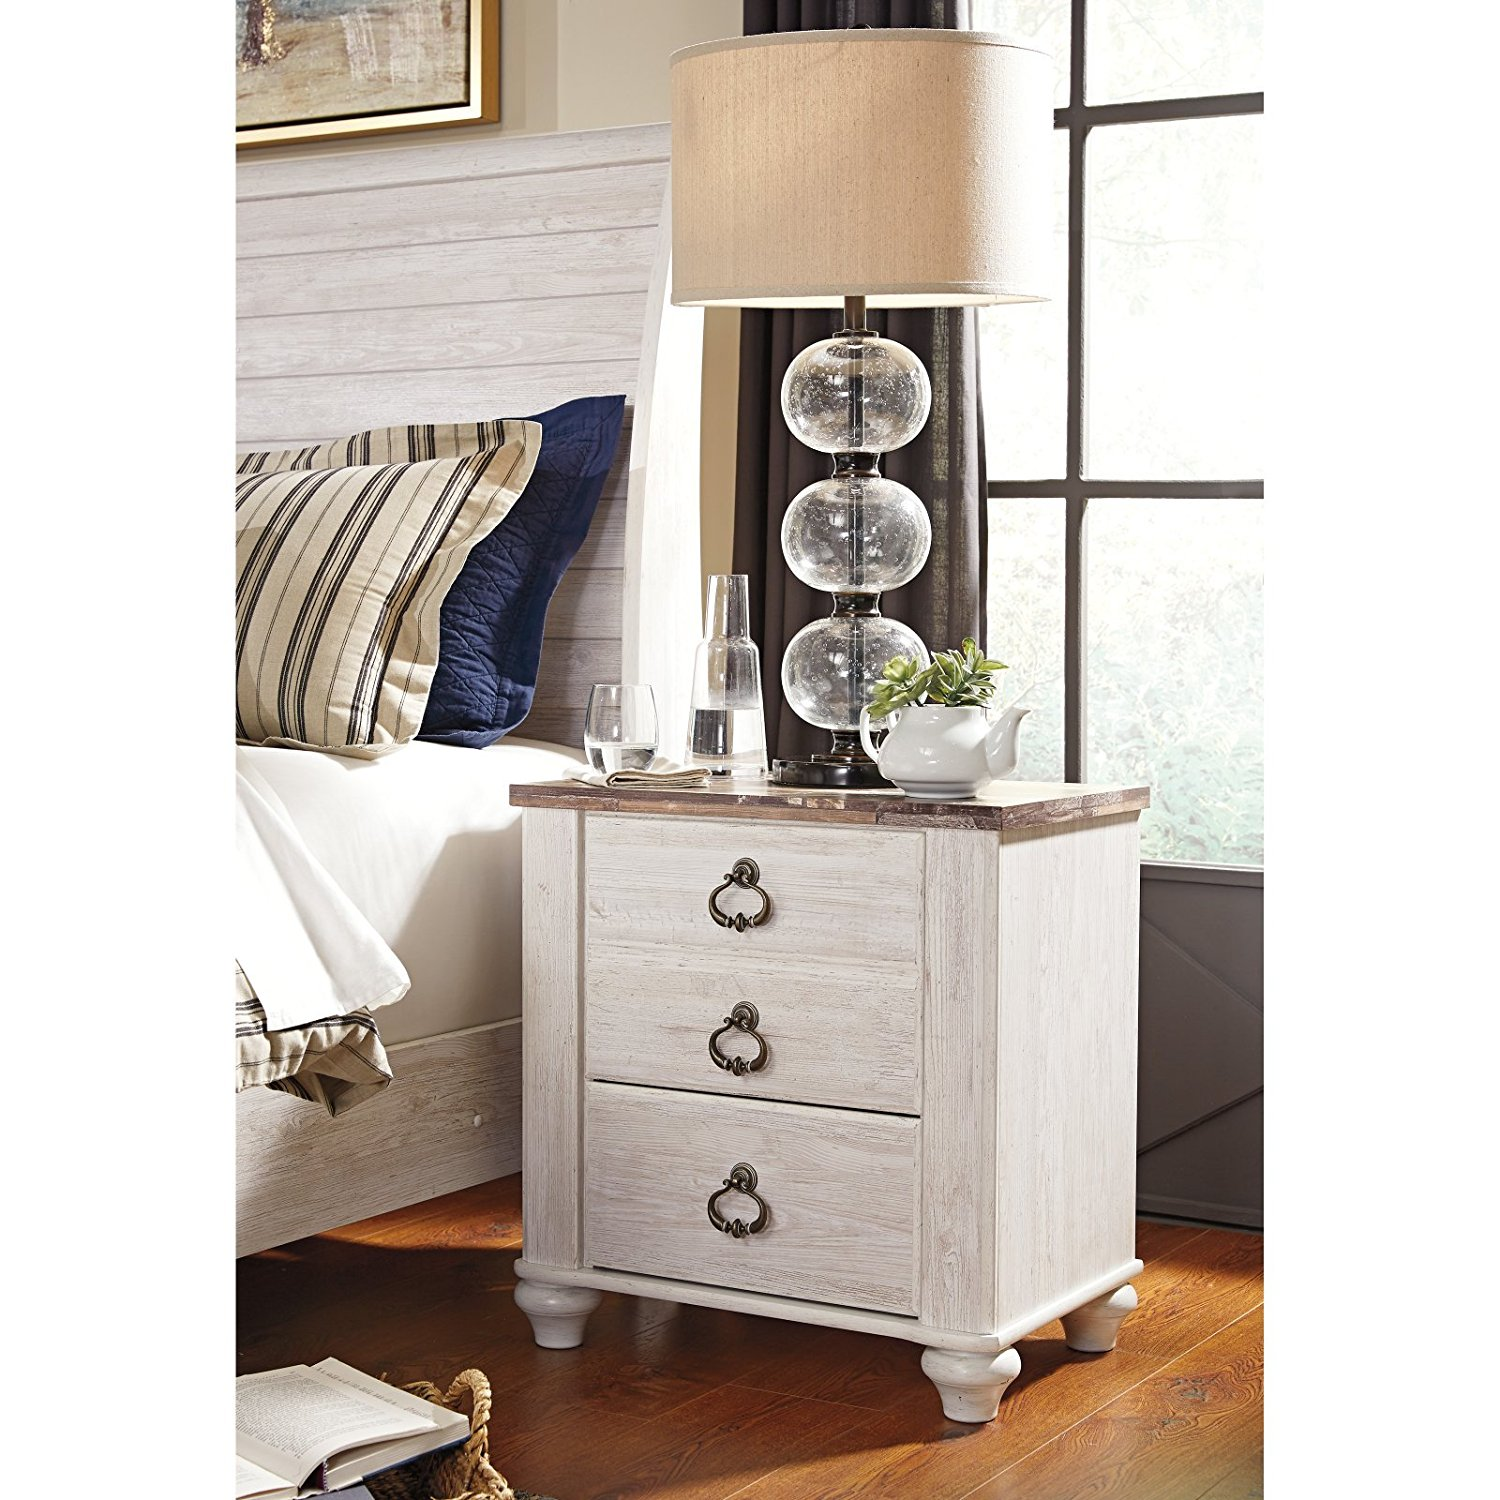 3 Drawer Nightstand, Side Table, Spacious Space, Enclosed Storage, Practical, Bedstand, Bed Side Cabinet, Suitable For Bedroom, Living Room, Home Furniture + Expert Guide